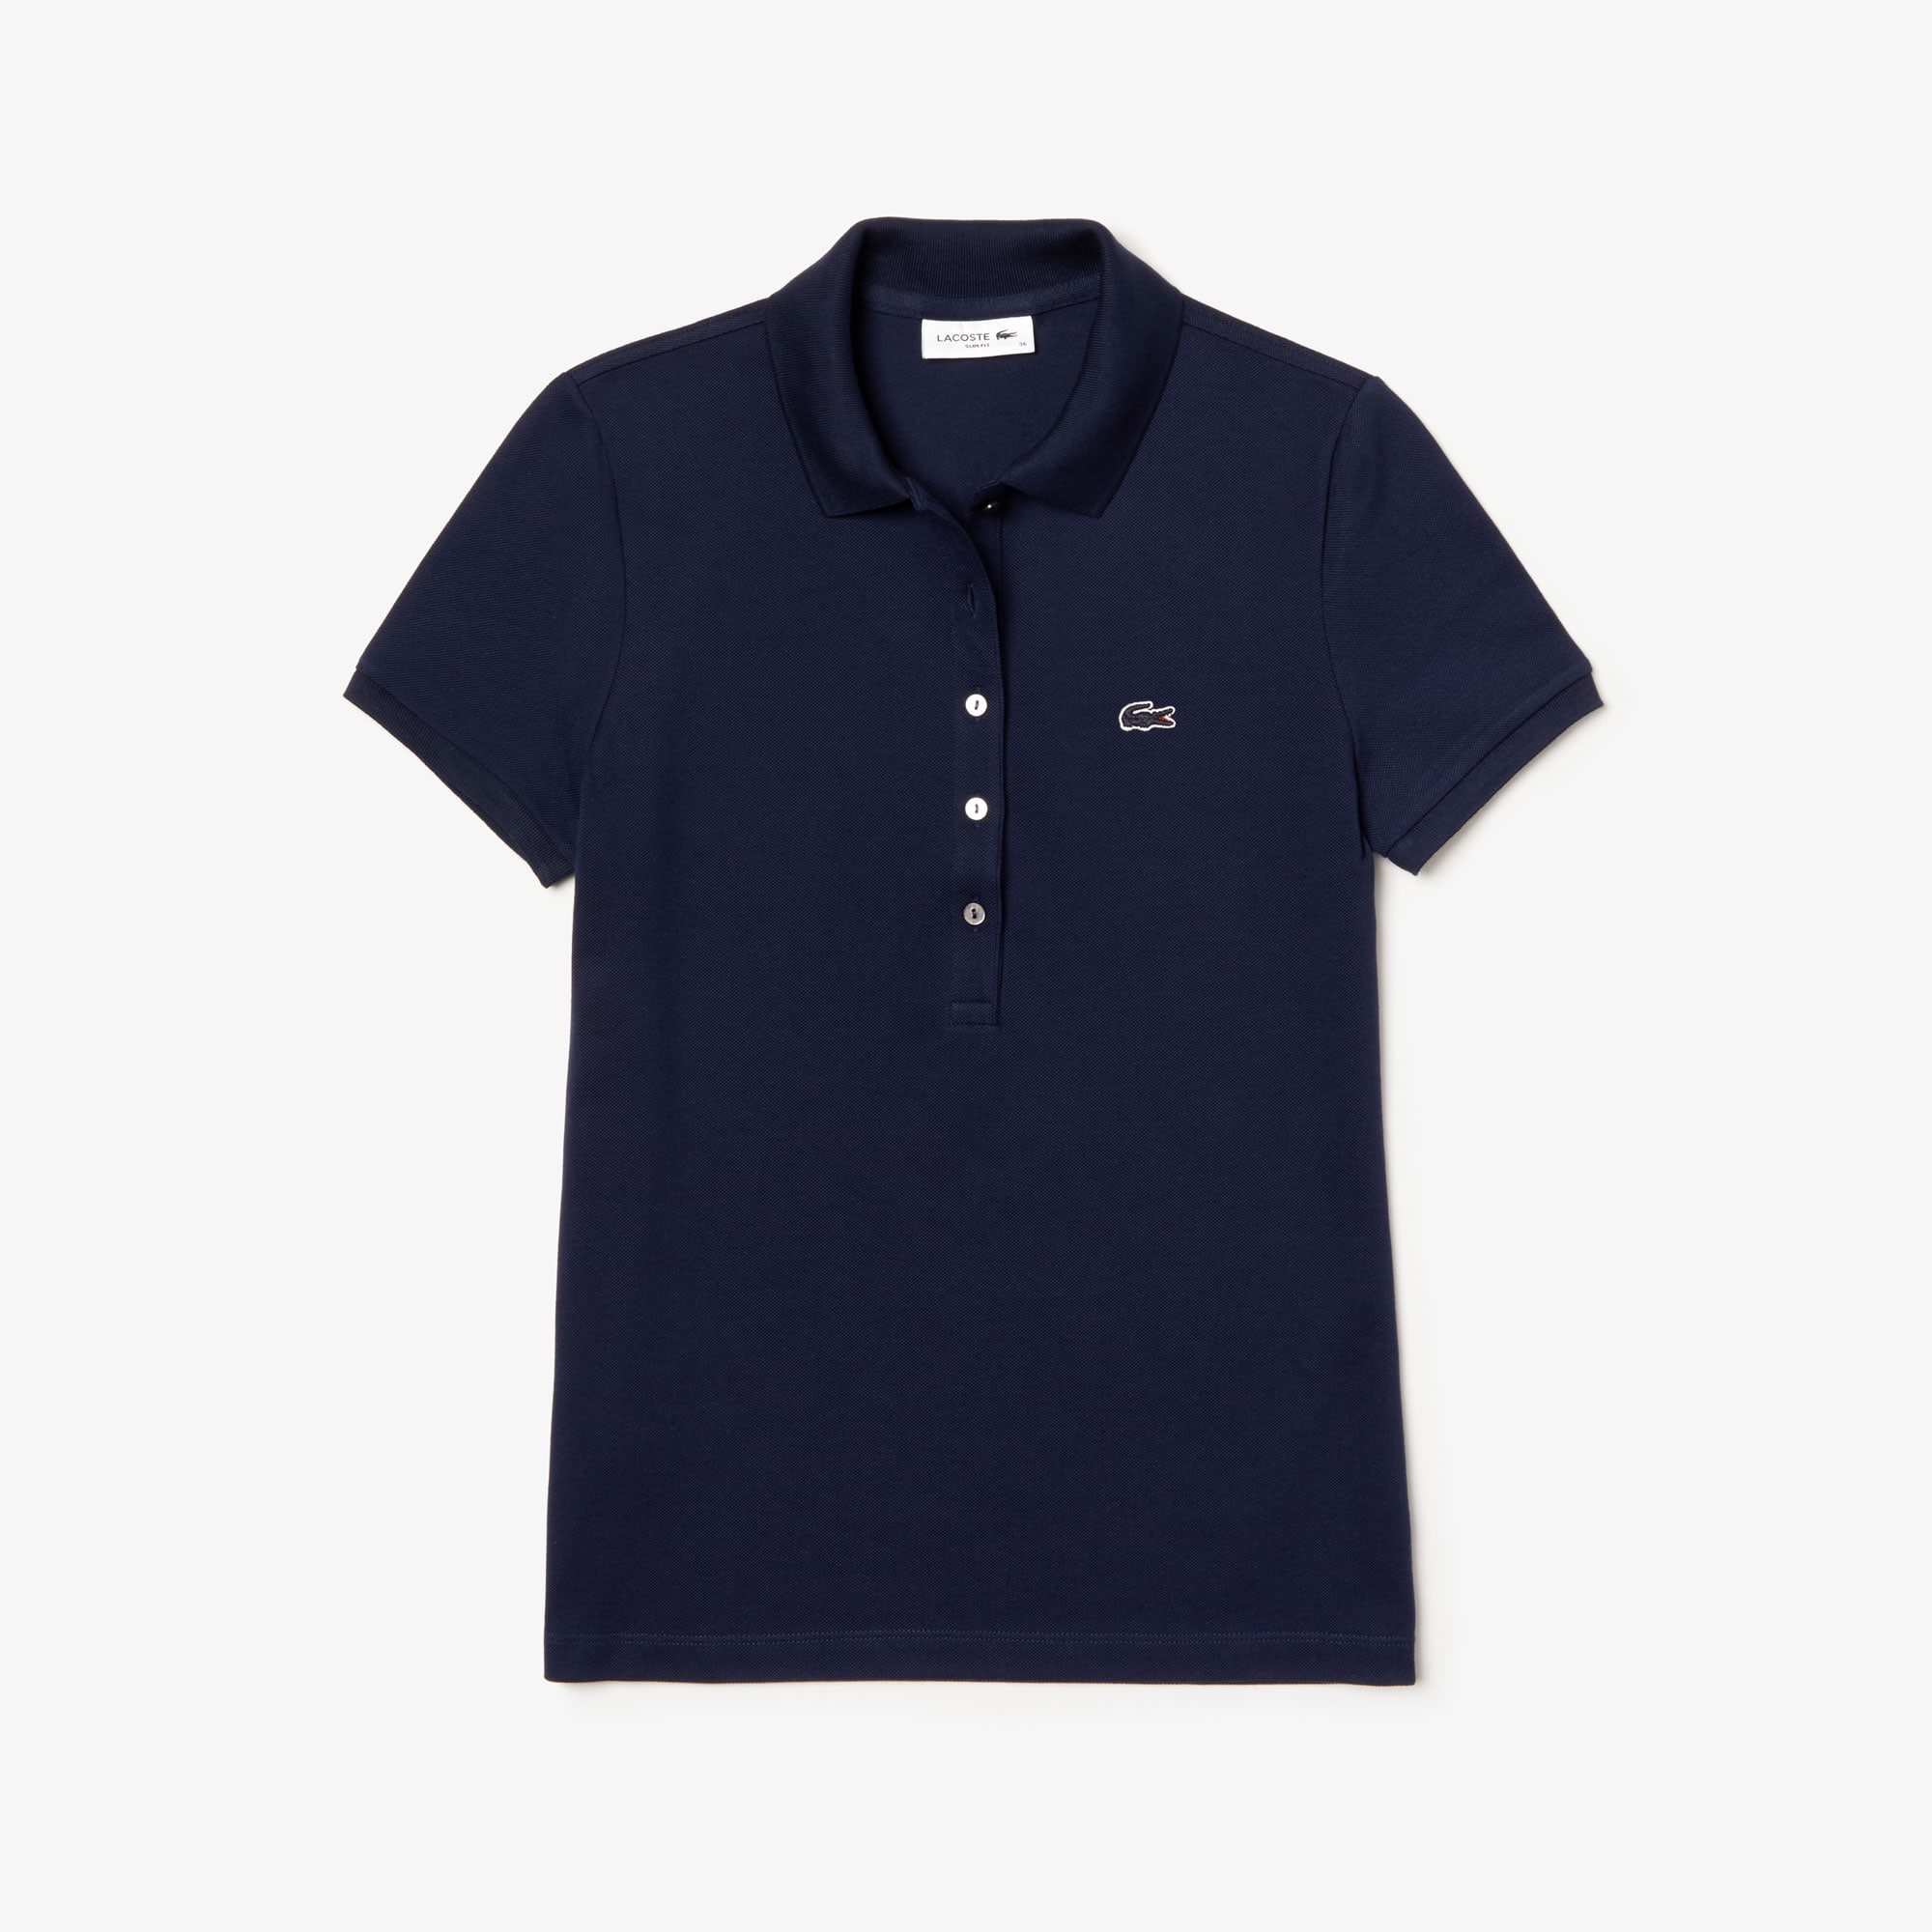 1604a8c0cb1 De Stretch Piqué Coton Mini Uni En Fit Slim Polo Lacoste nH4BTBp